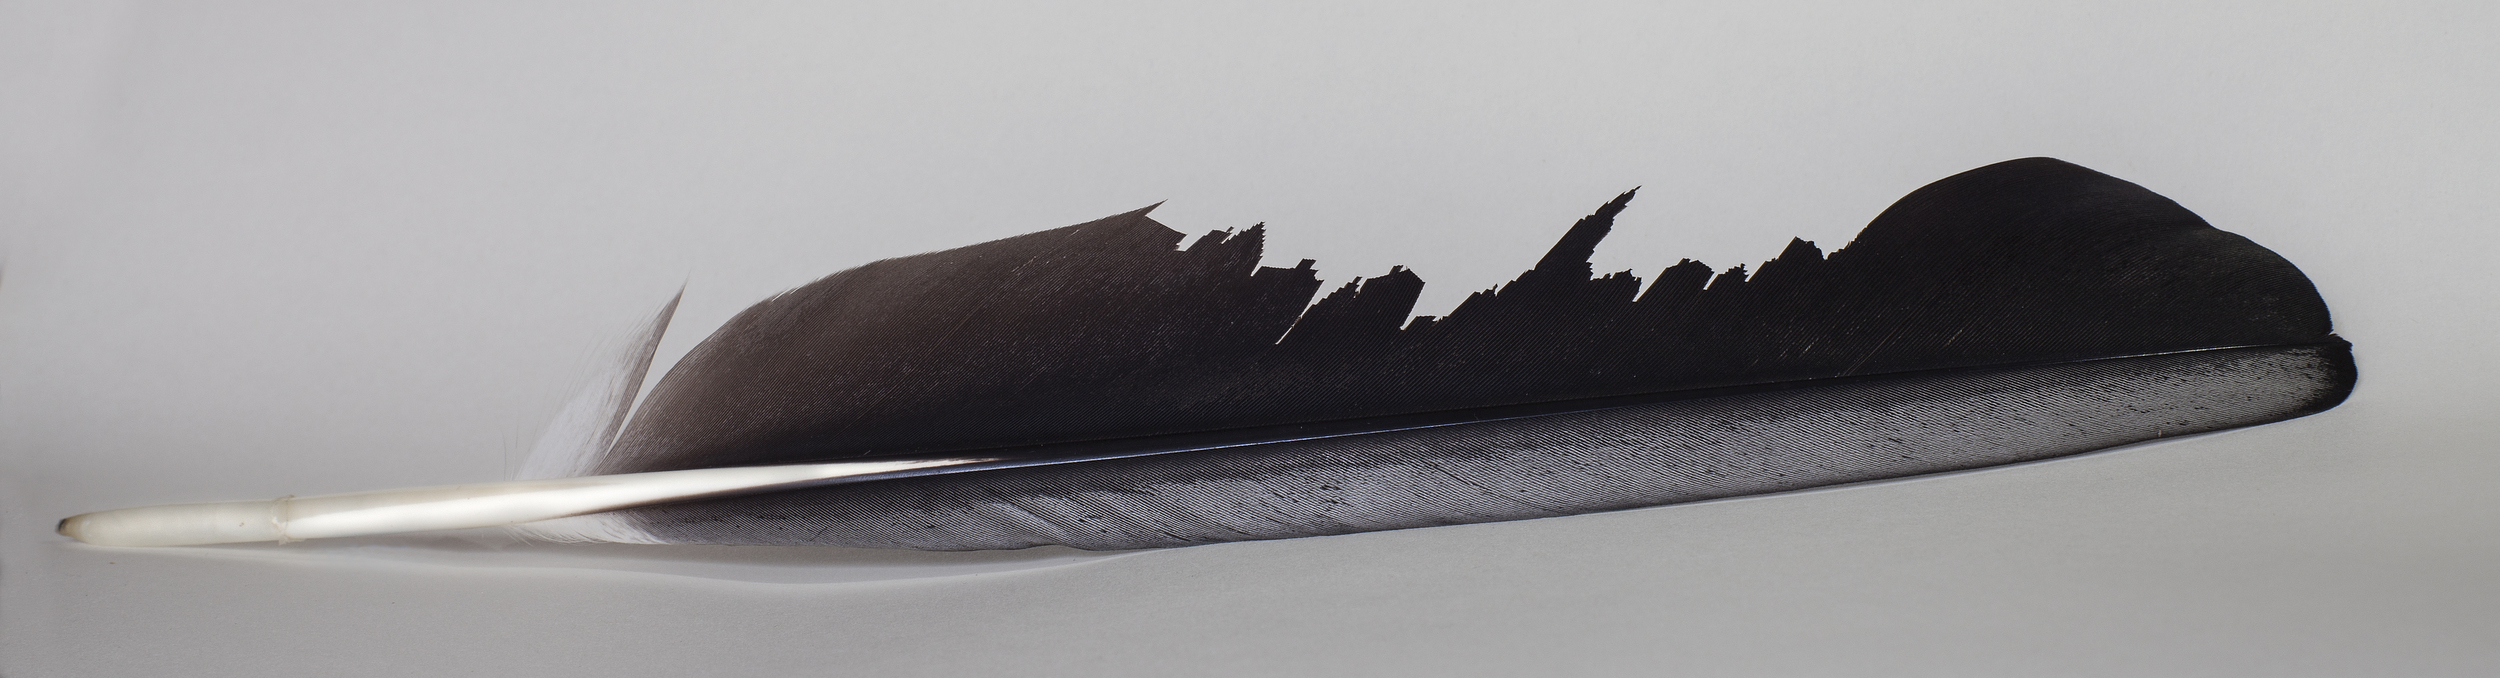 Photographs of the Feather series, commissioned by artist/designer  Theresa Blommerde